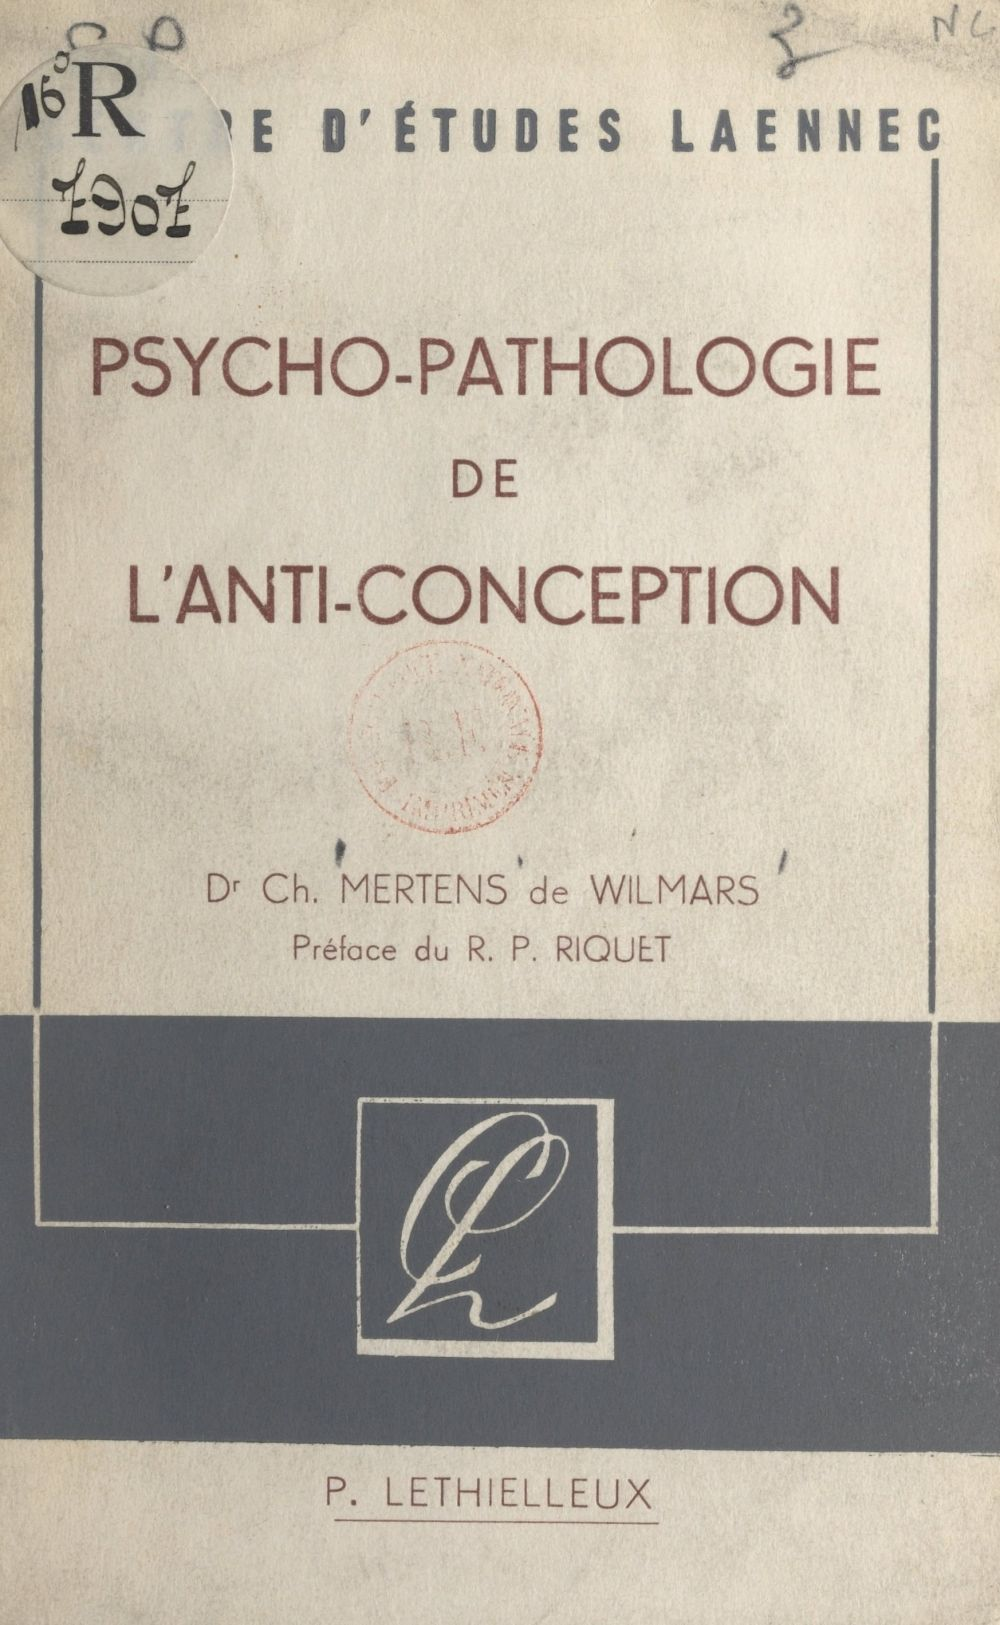 Psychopathologie de l'anti-conception